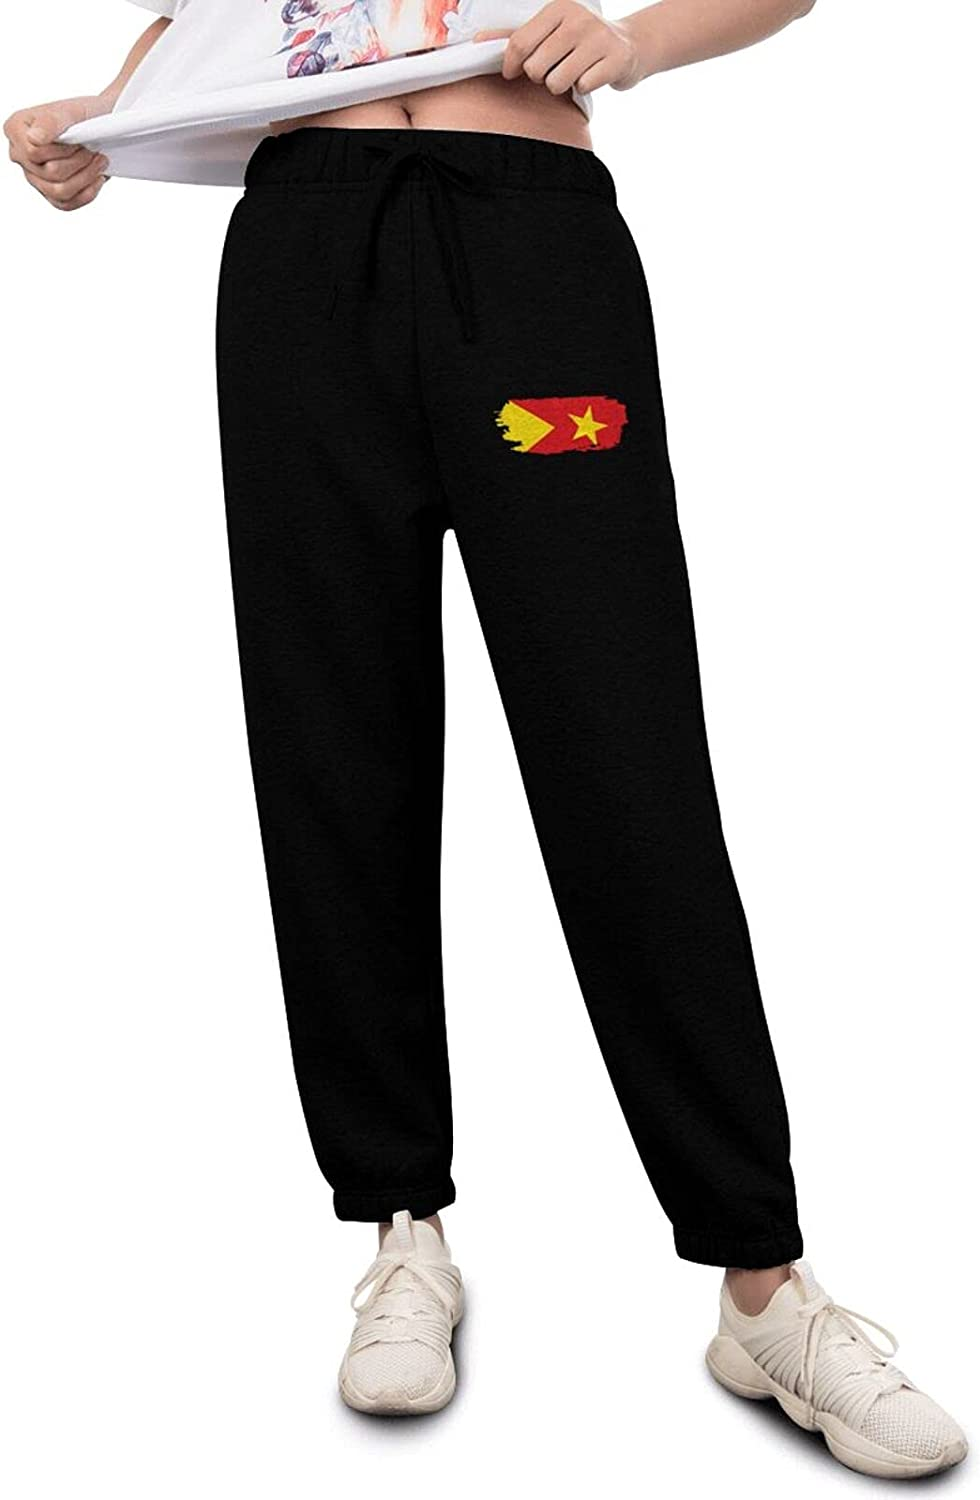 Tigray Flag Women's Limited time sale Lightweight Breathable Relaxed Workout Pants Luxury goods